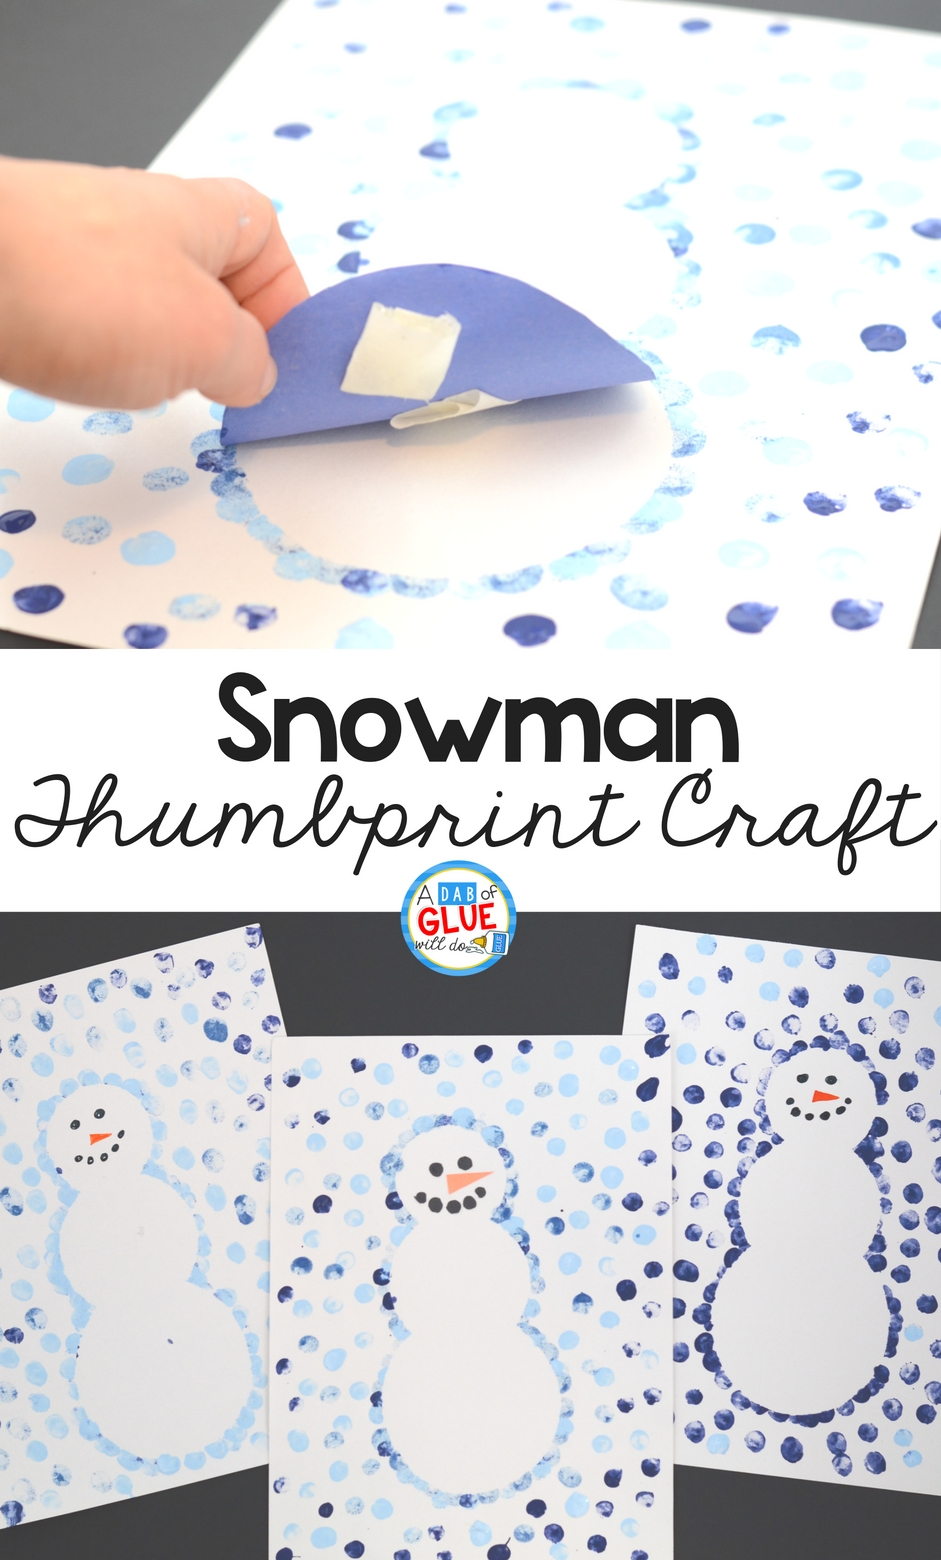 Create this Snowman Thumbprint Art in your kindergarten classroom as your next winter craft! It's a great fine motor snowman craft idea for kids.